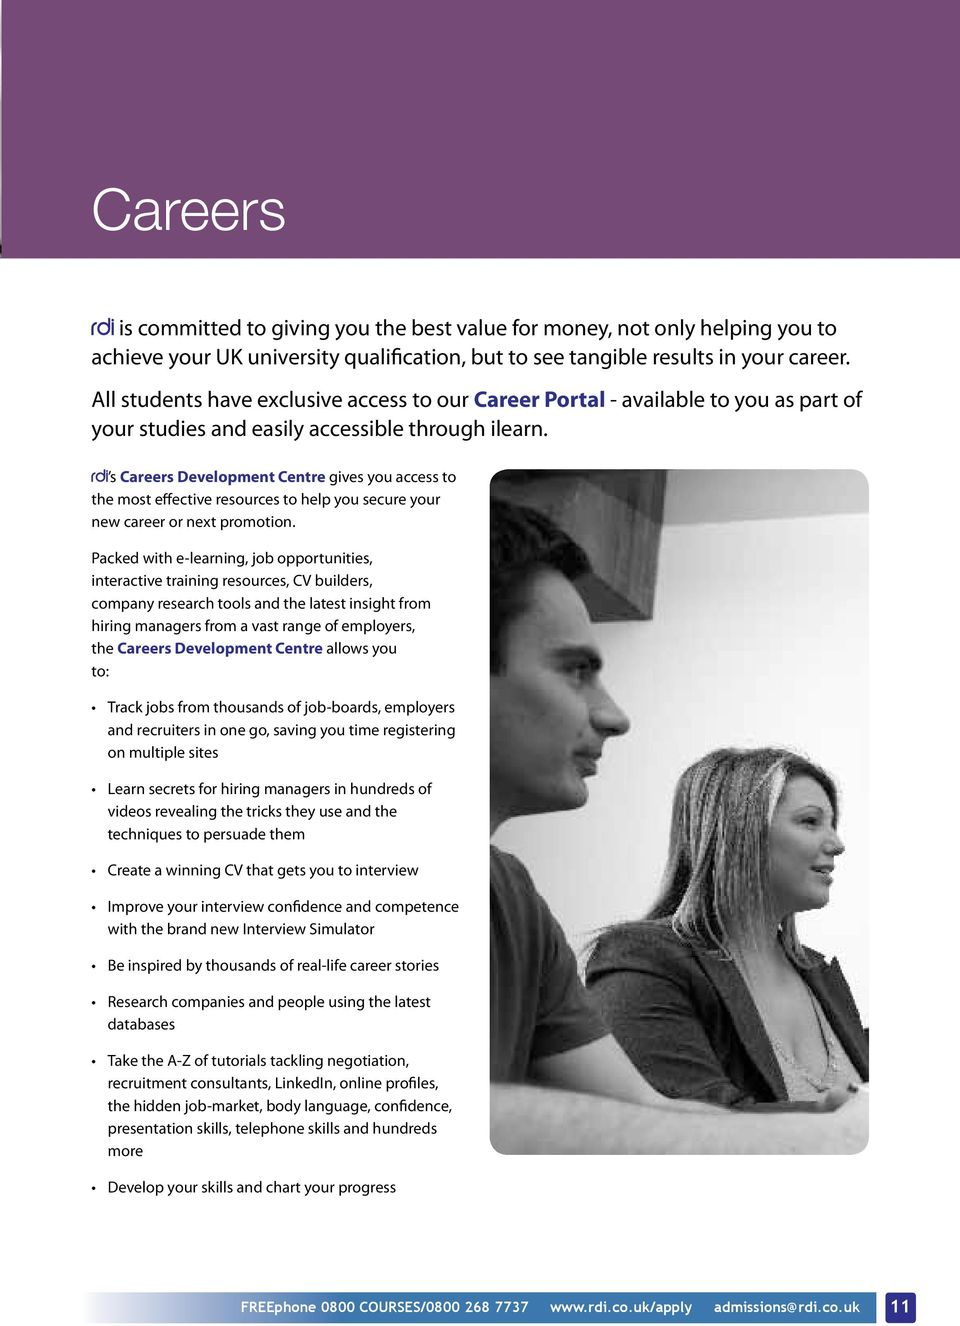 s Careers Development Centre gives you access to the most effective resources to help you secure your new career or next promotion.